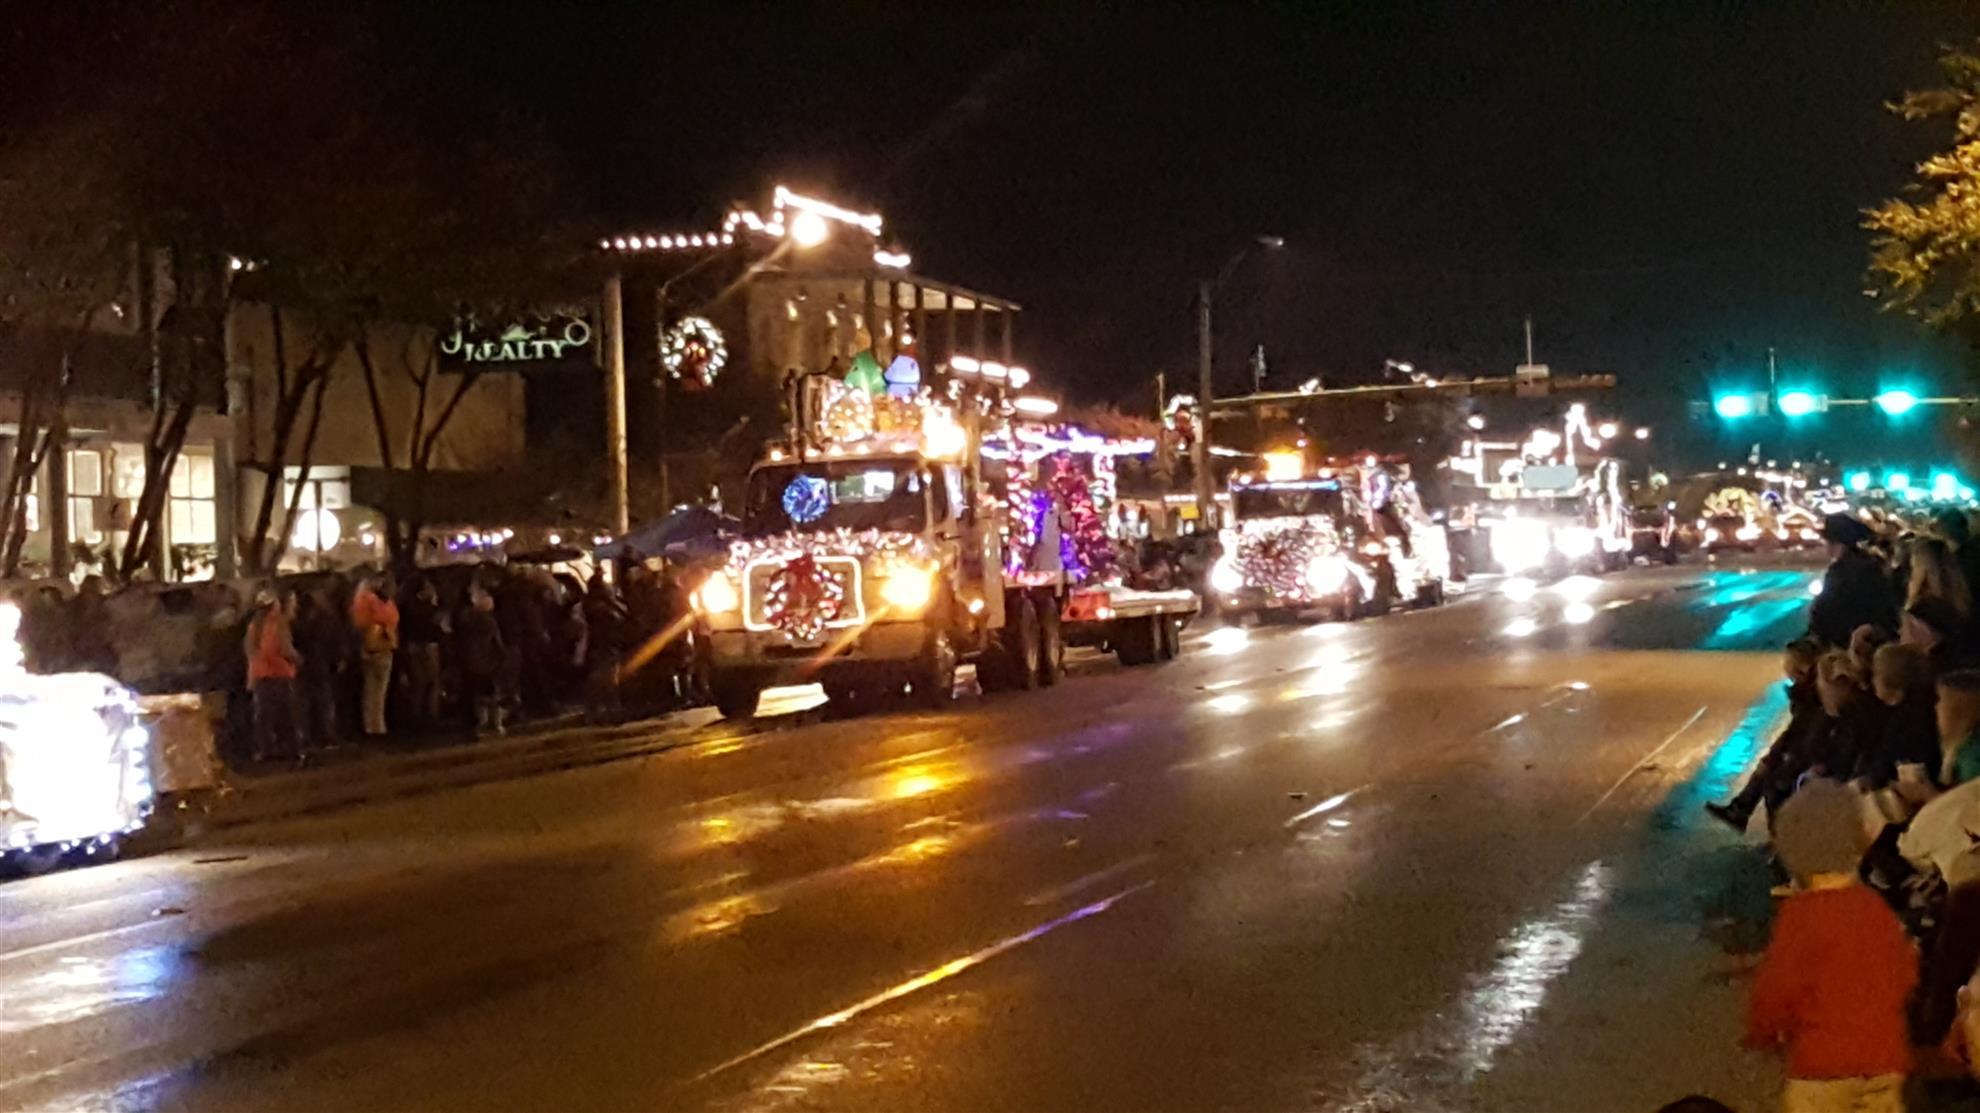 Stories Rotary Club Of Lakeway Lake Travis Power Supply For Lights In Trailer Vehicles Contractor Talk Fellow Members This Is Just A Note To Remind You That We Have Arranged Our Christmas Bus Take Us Fredericksburg Next